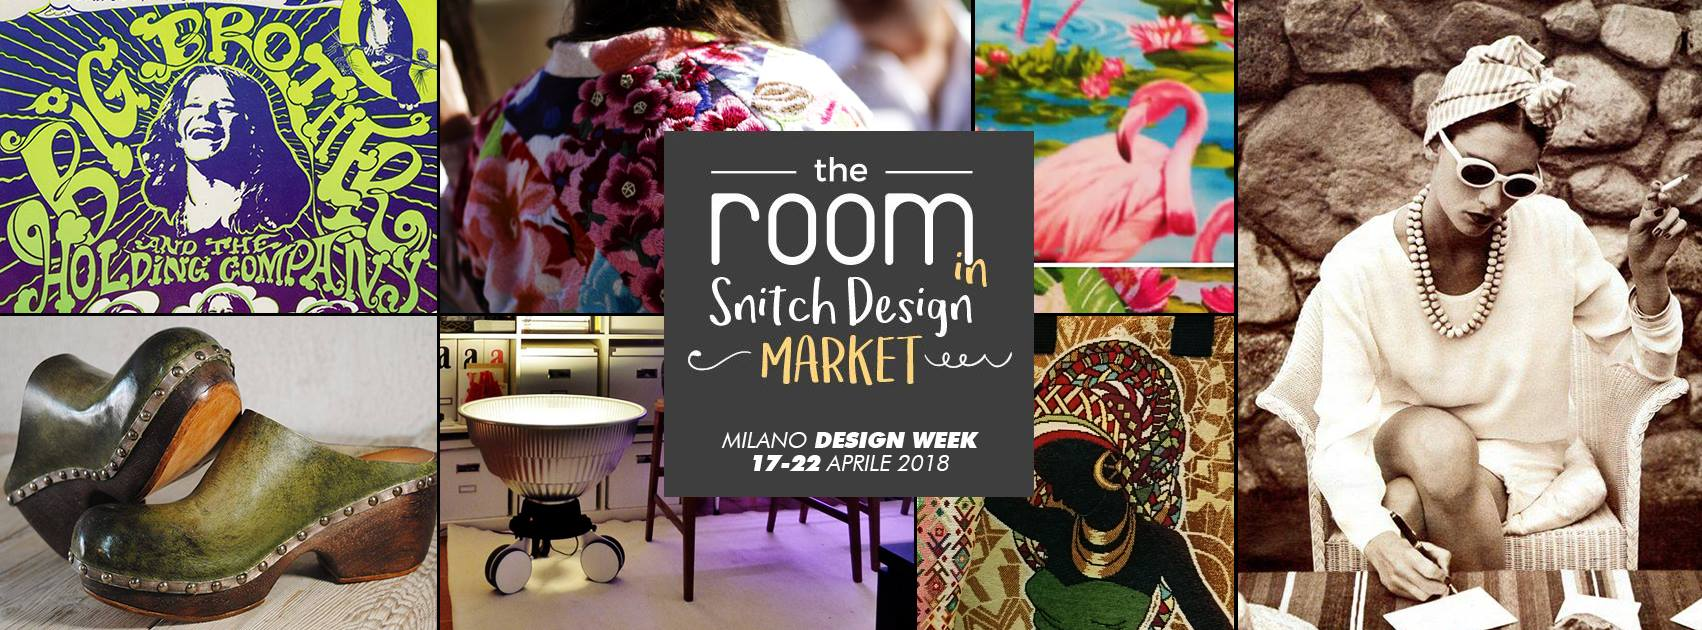 Snitch Design Market 2018 milano design week party